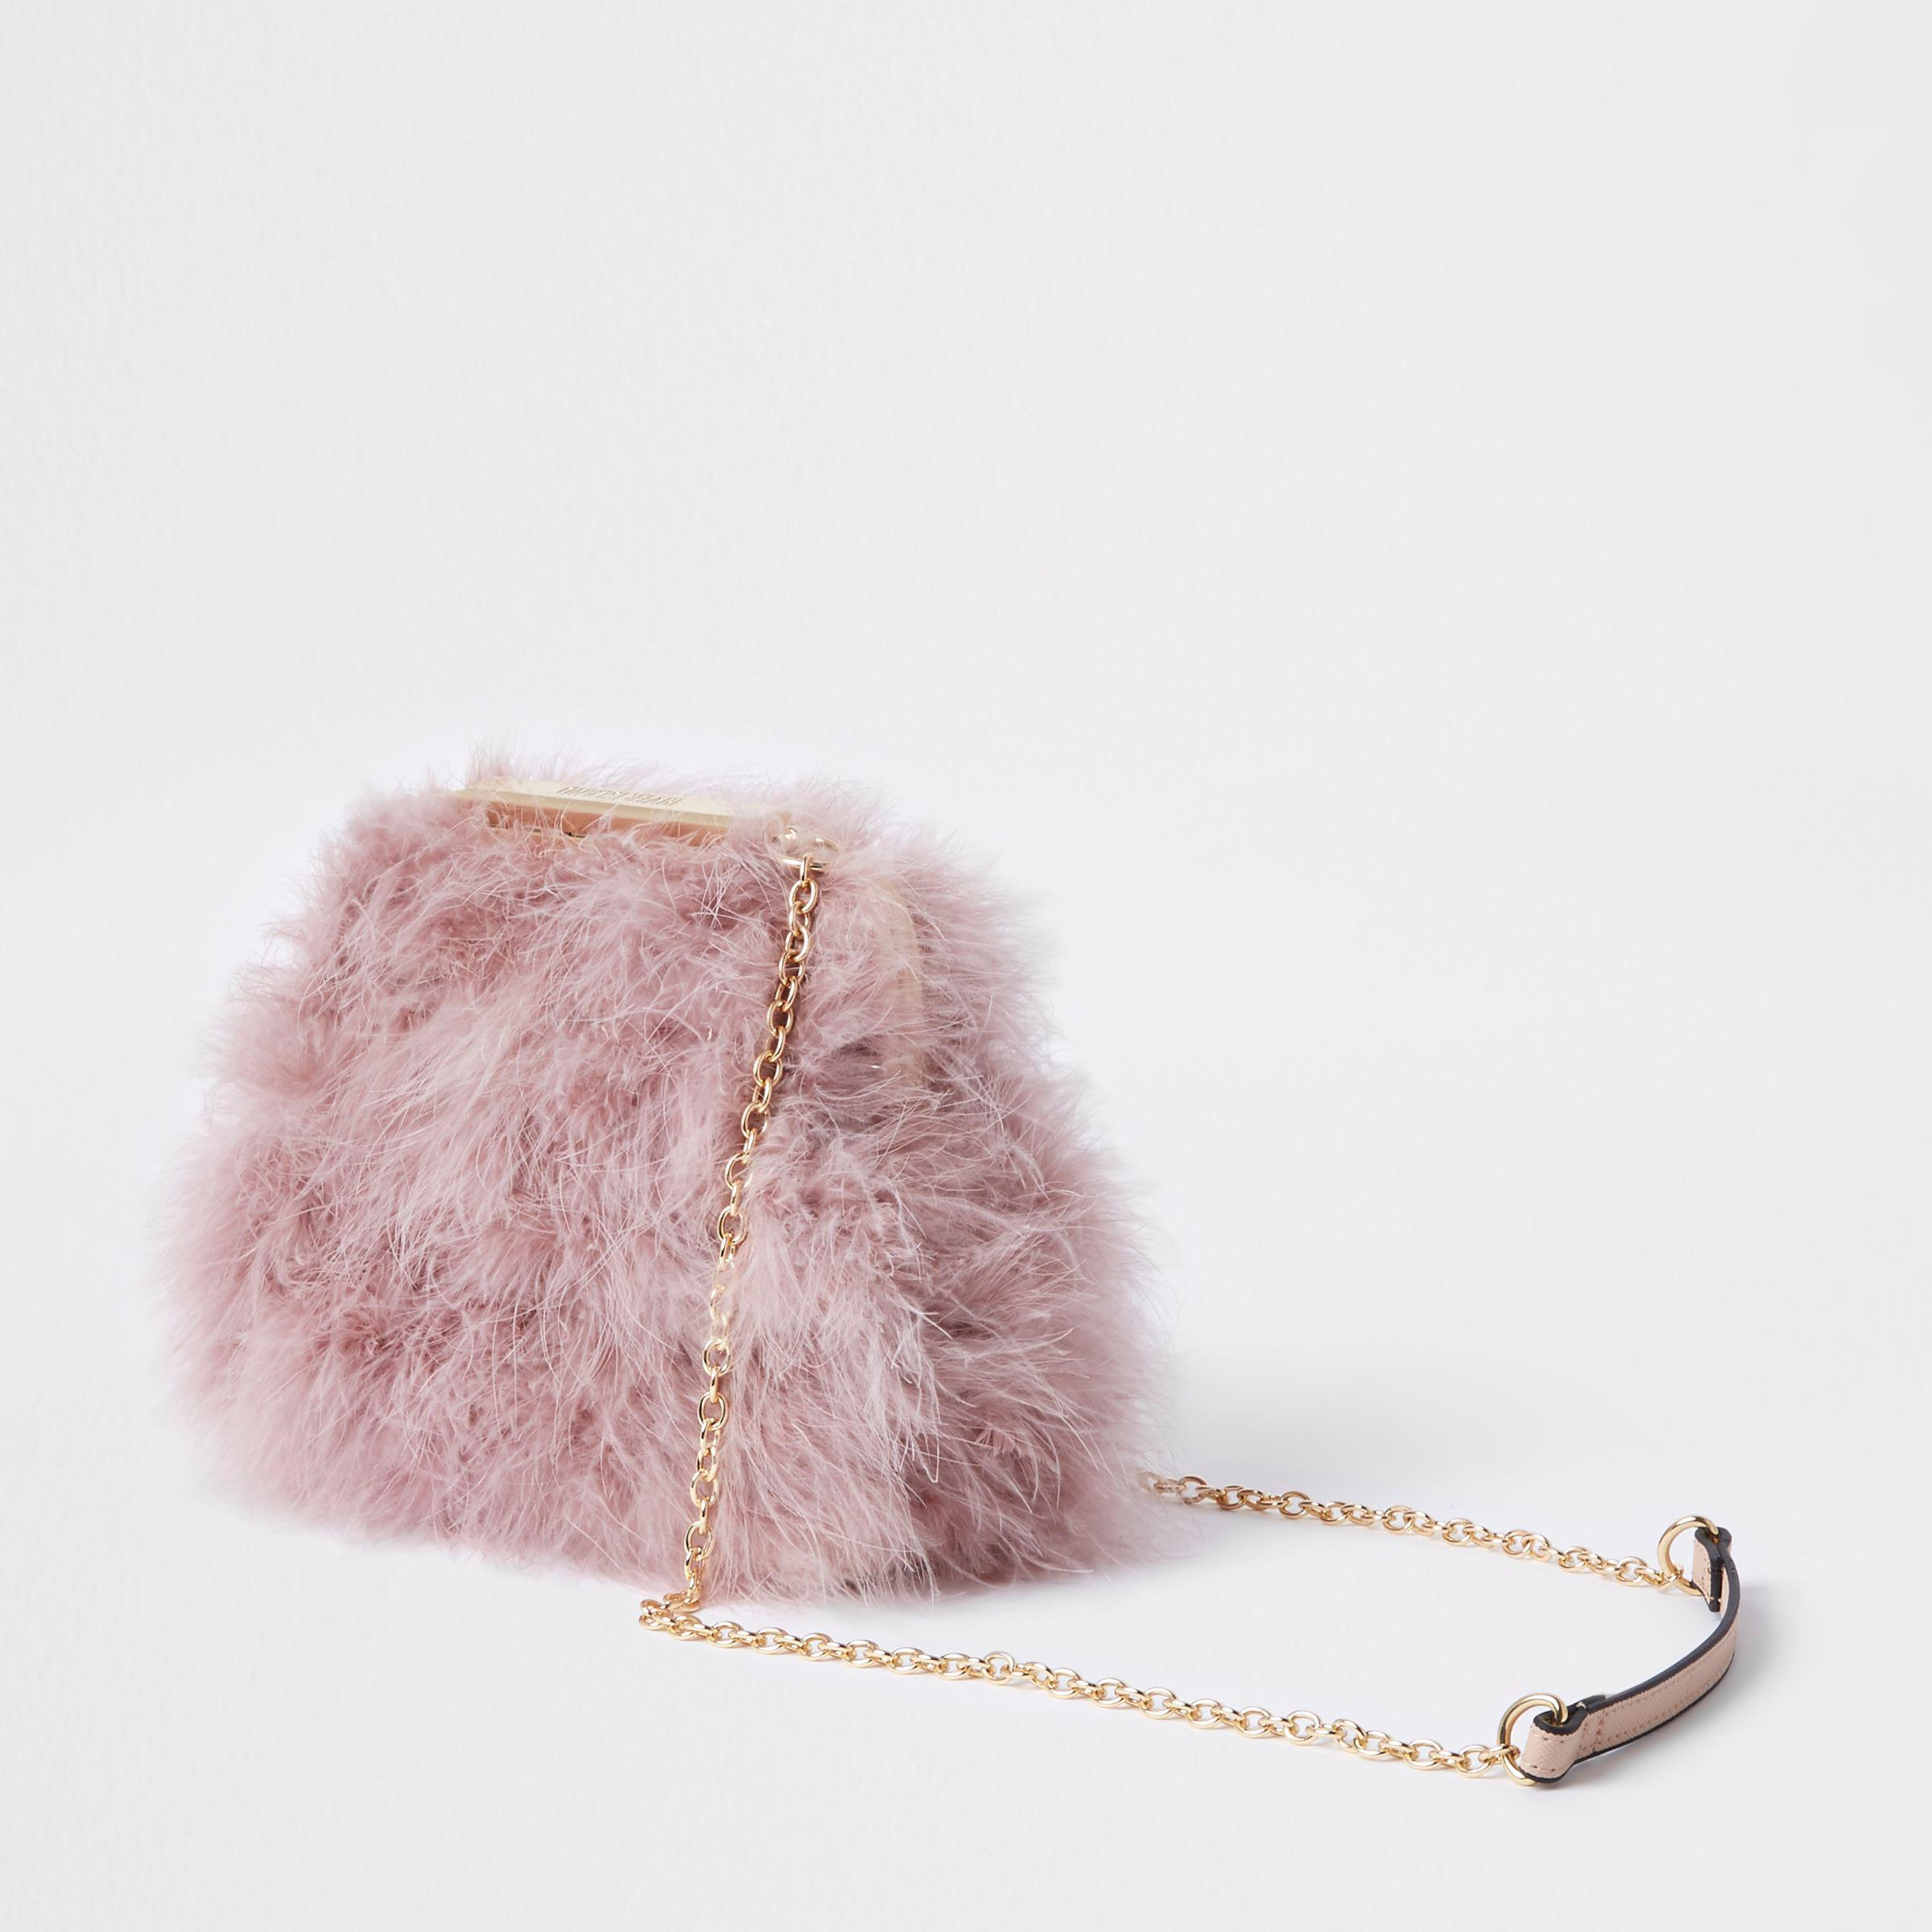 River Island Pink Feather Clutch Chain Bag in Pink - Lyst 53c25364f608e